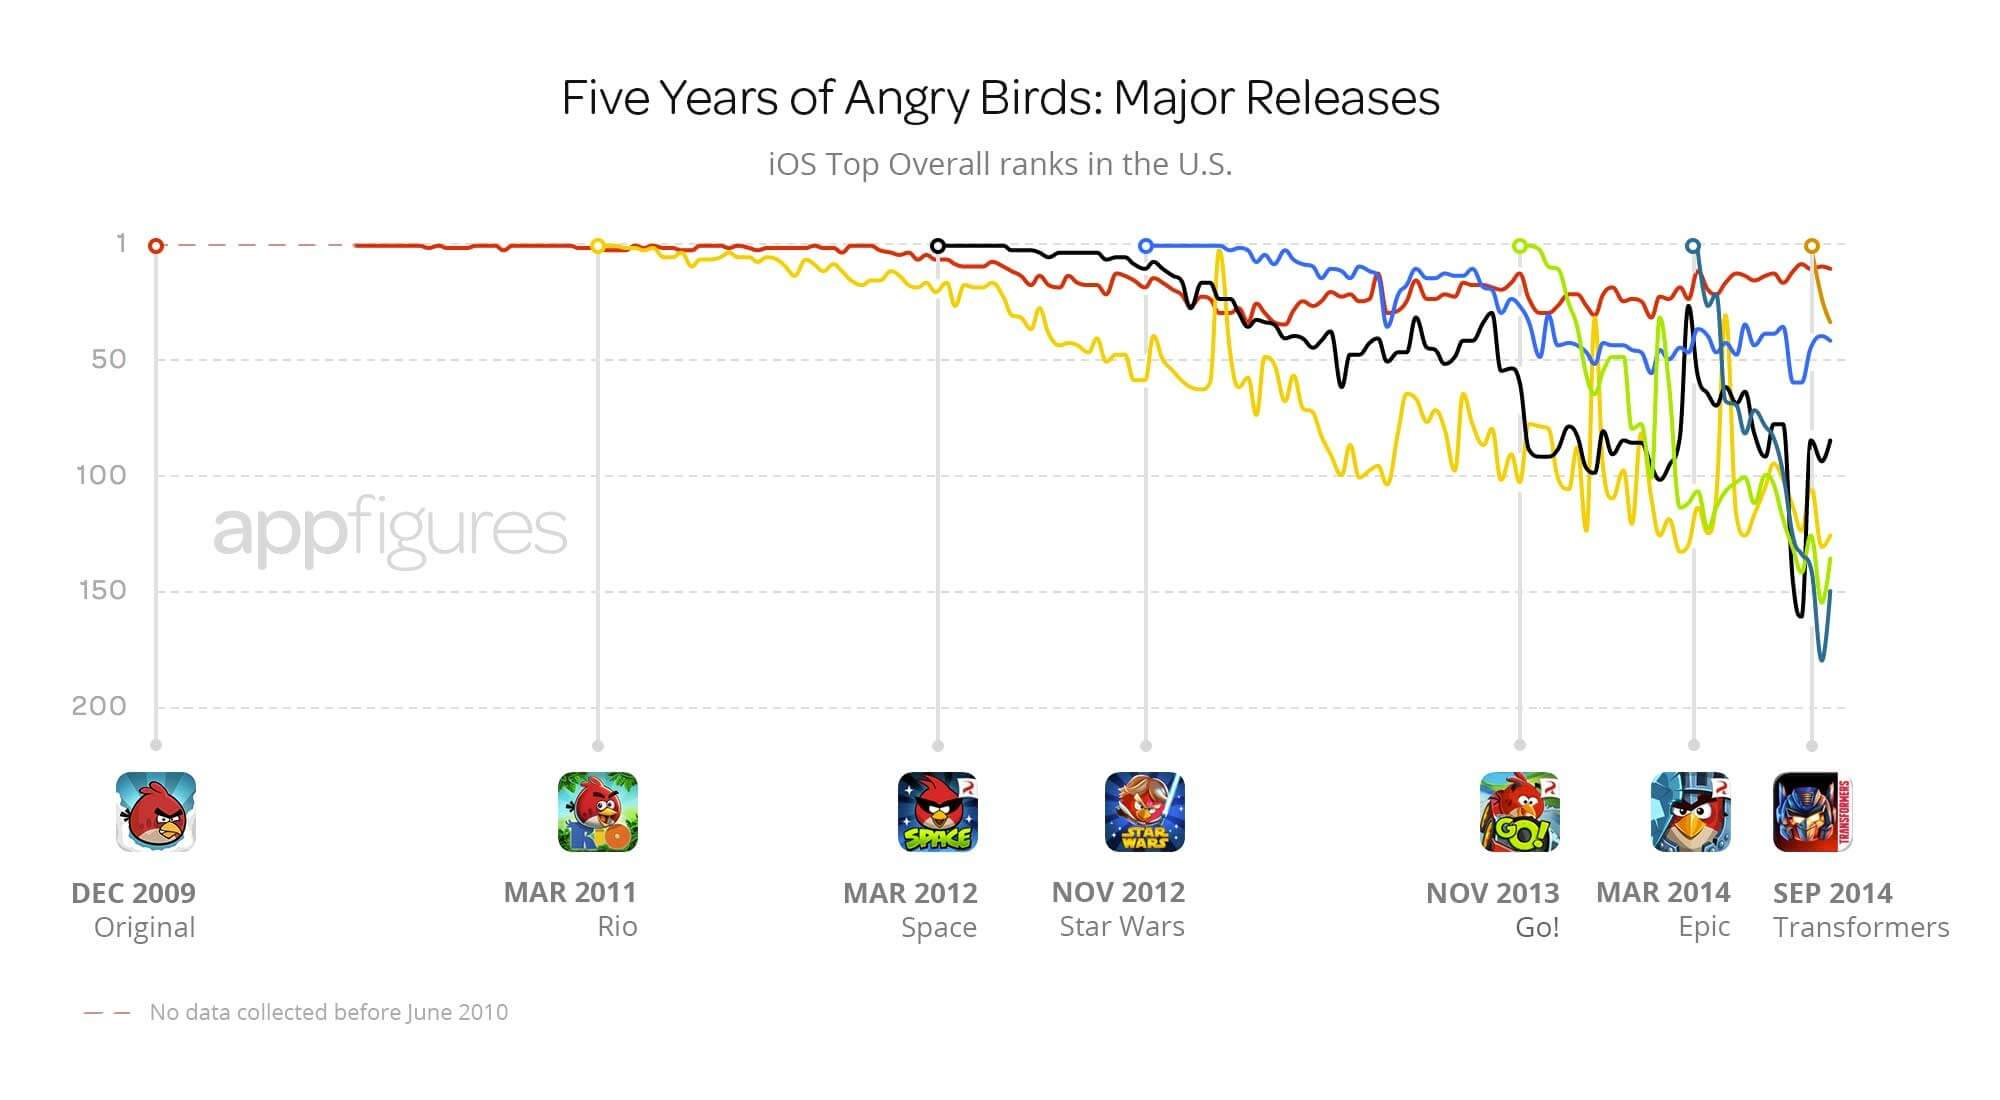 App-store-ranking-of-Angry-Birds-versions.